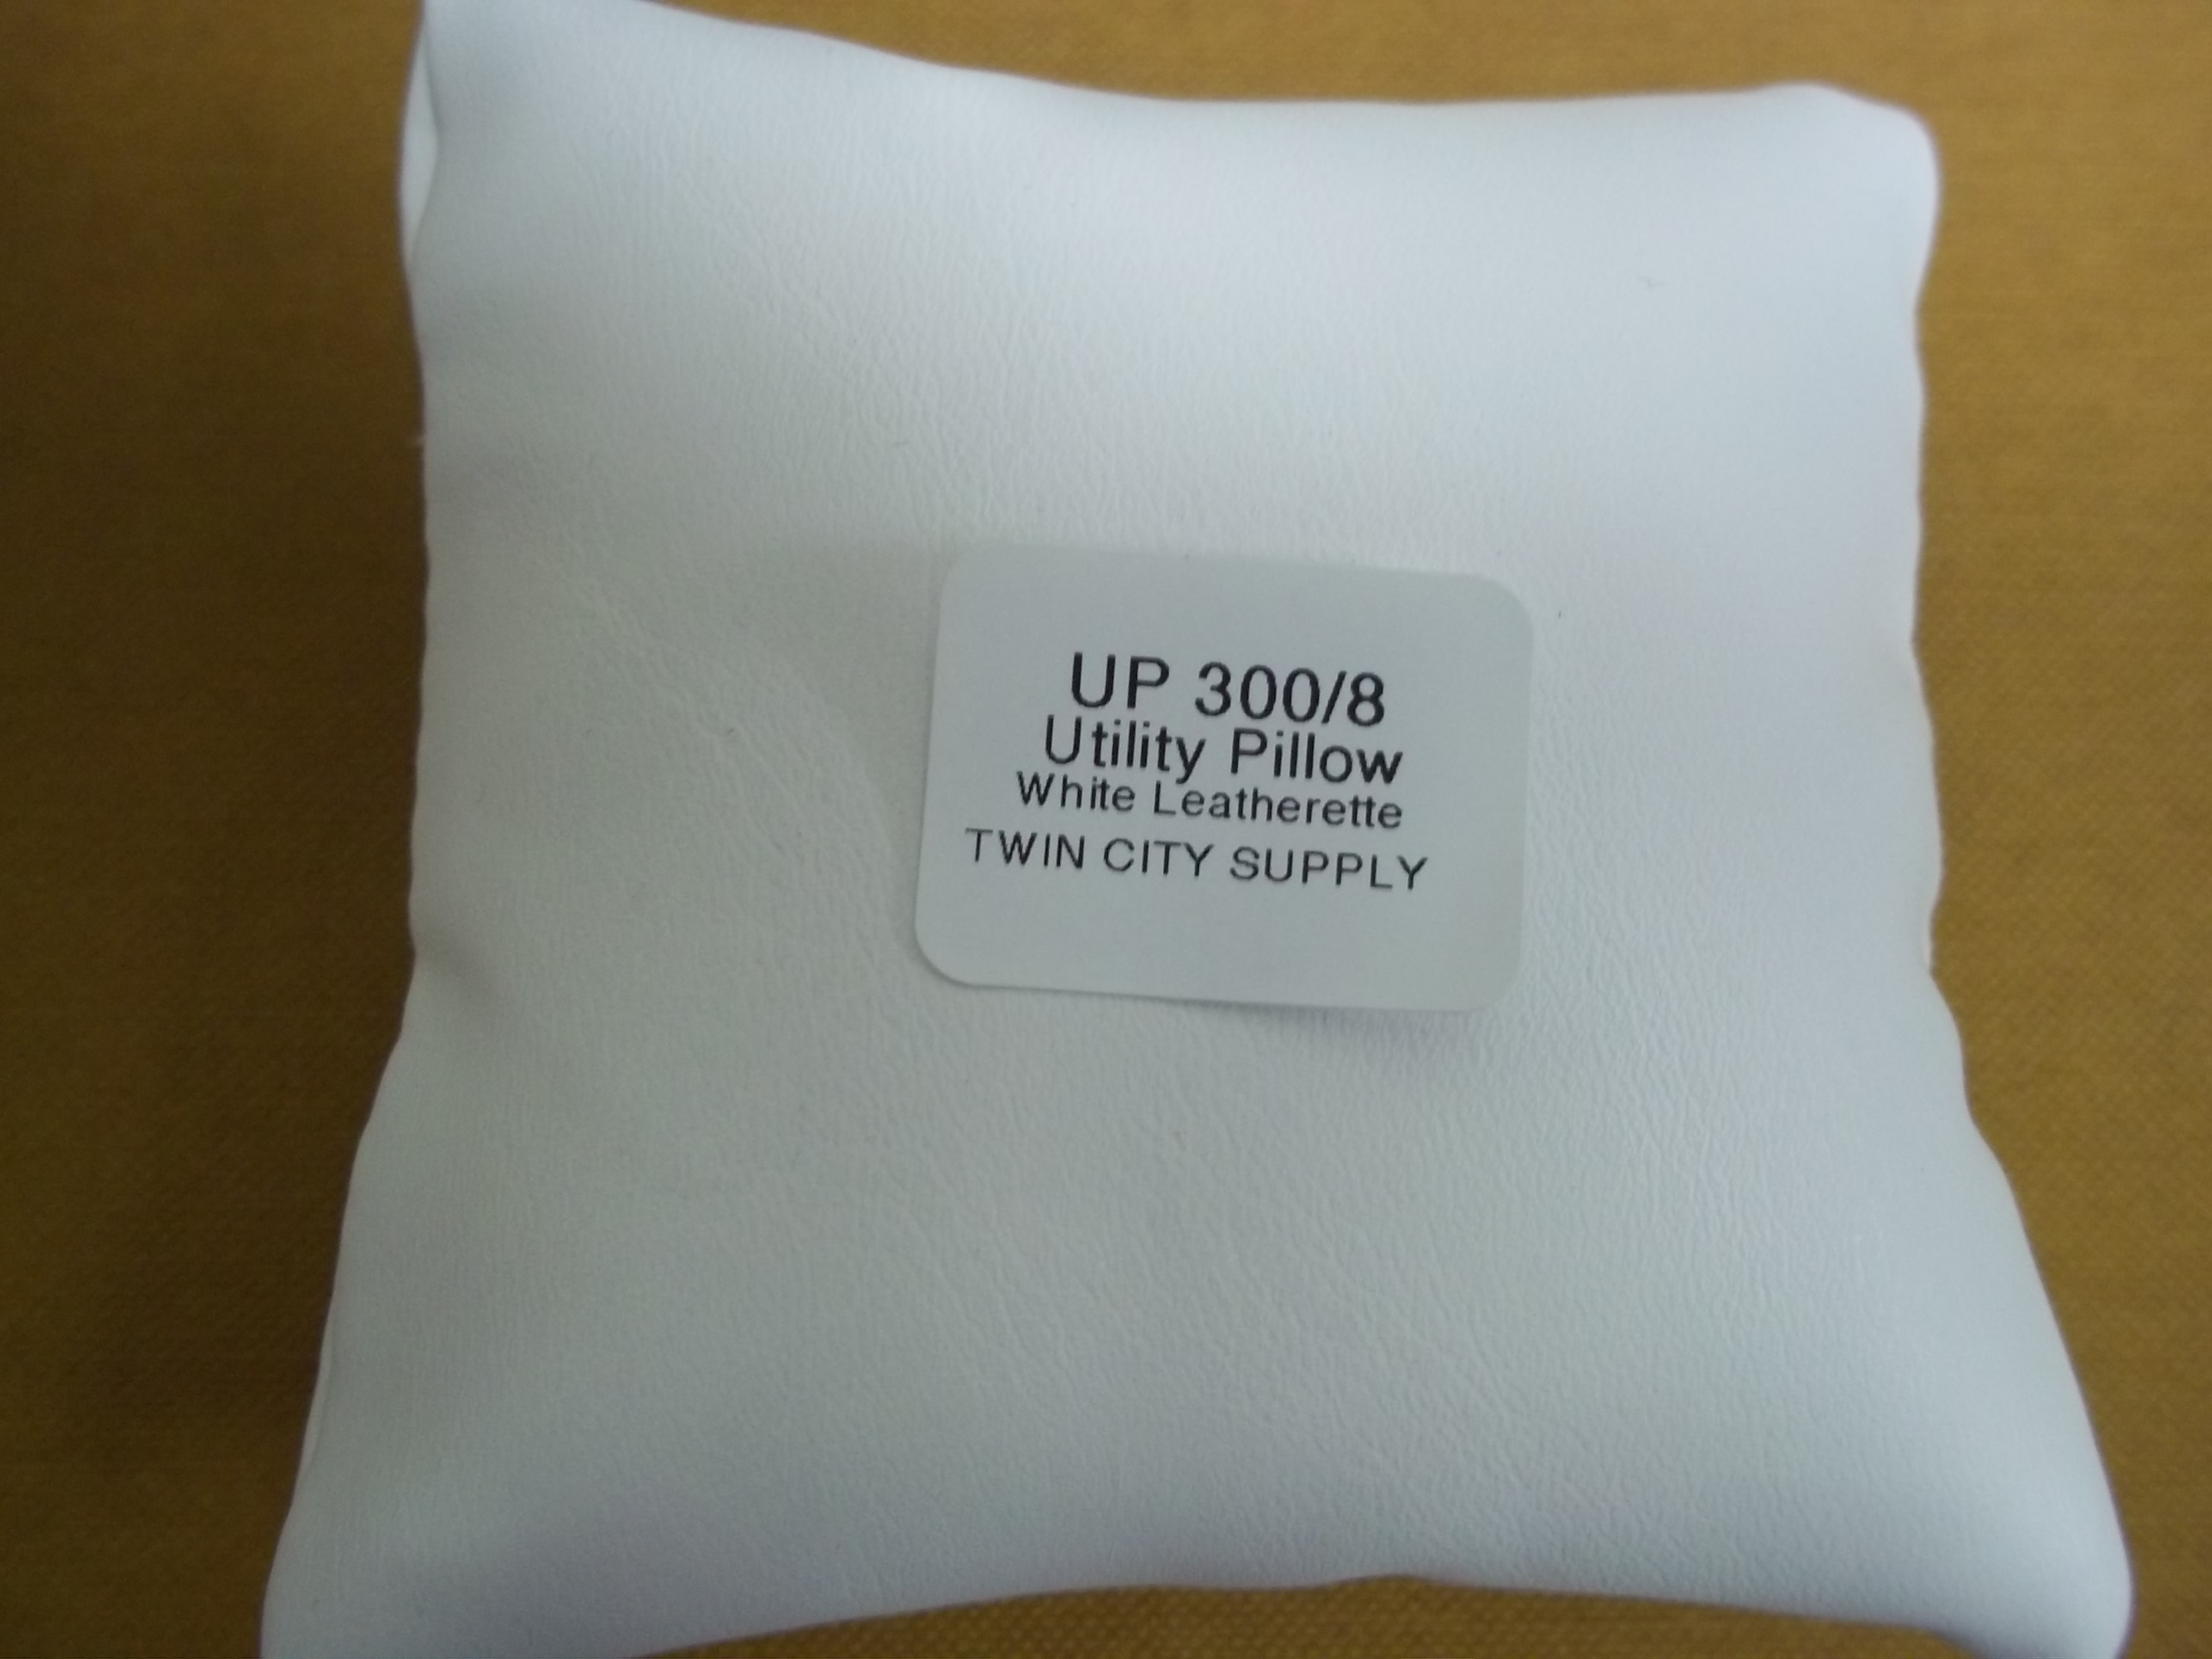 UP300/8 White leatherette Utility (Display) Pillow